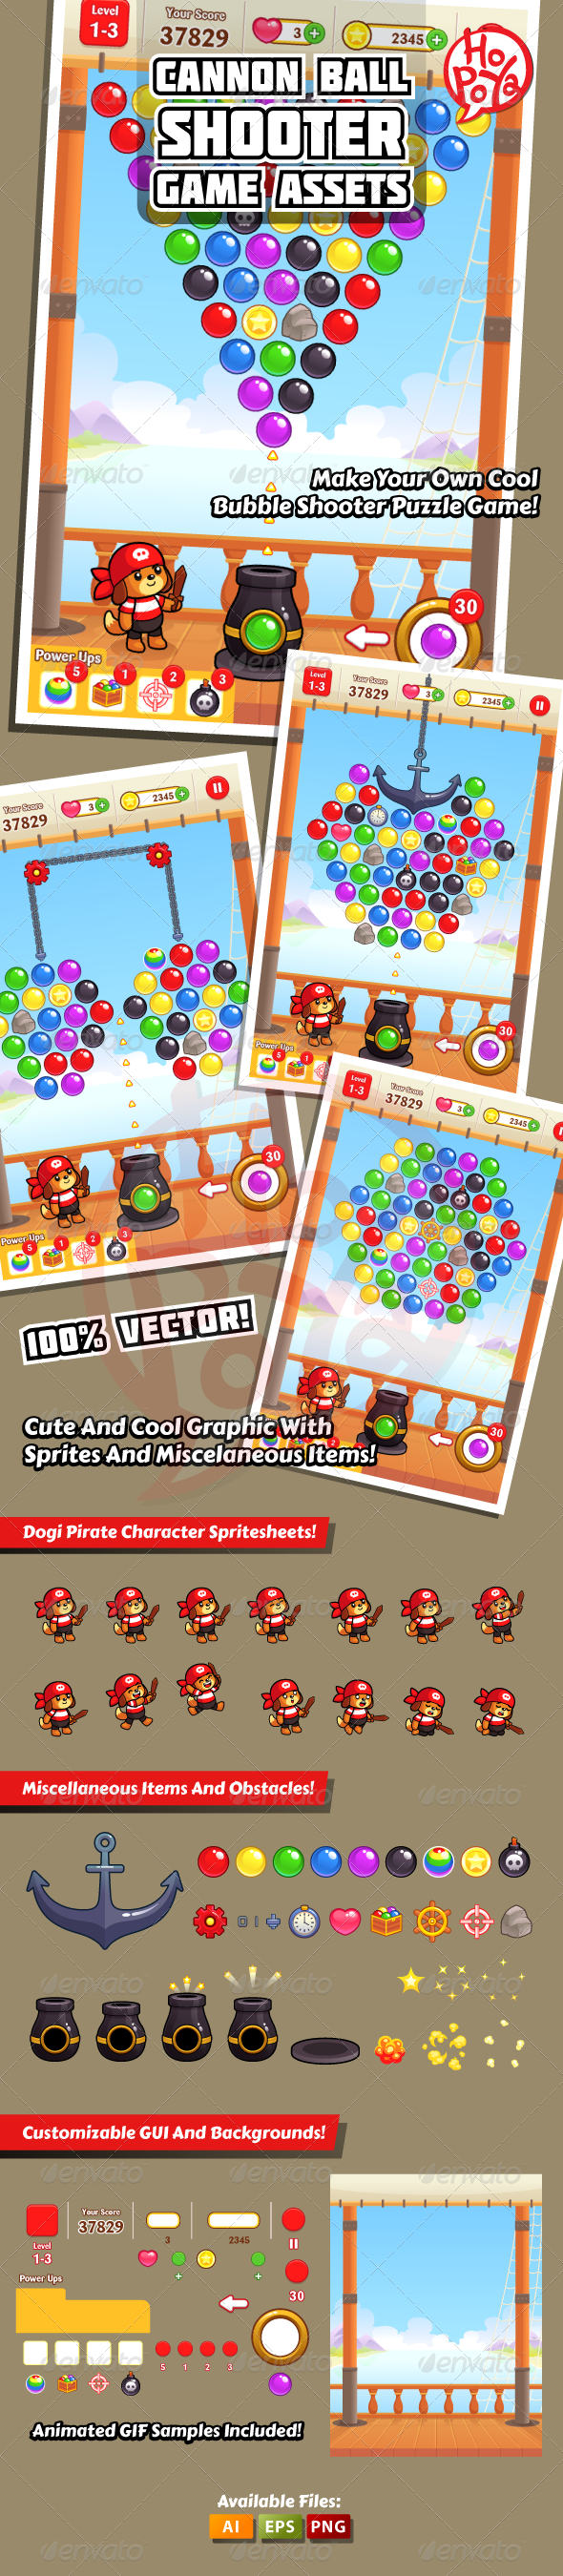 Cannon Ball Shooter Game Assets - Characters Vectors